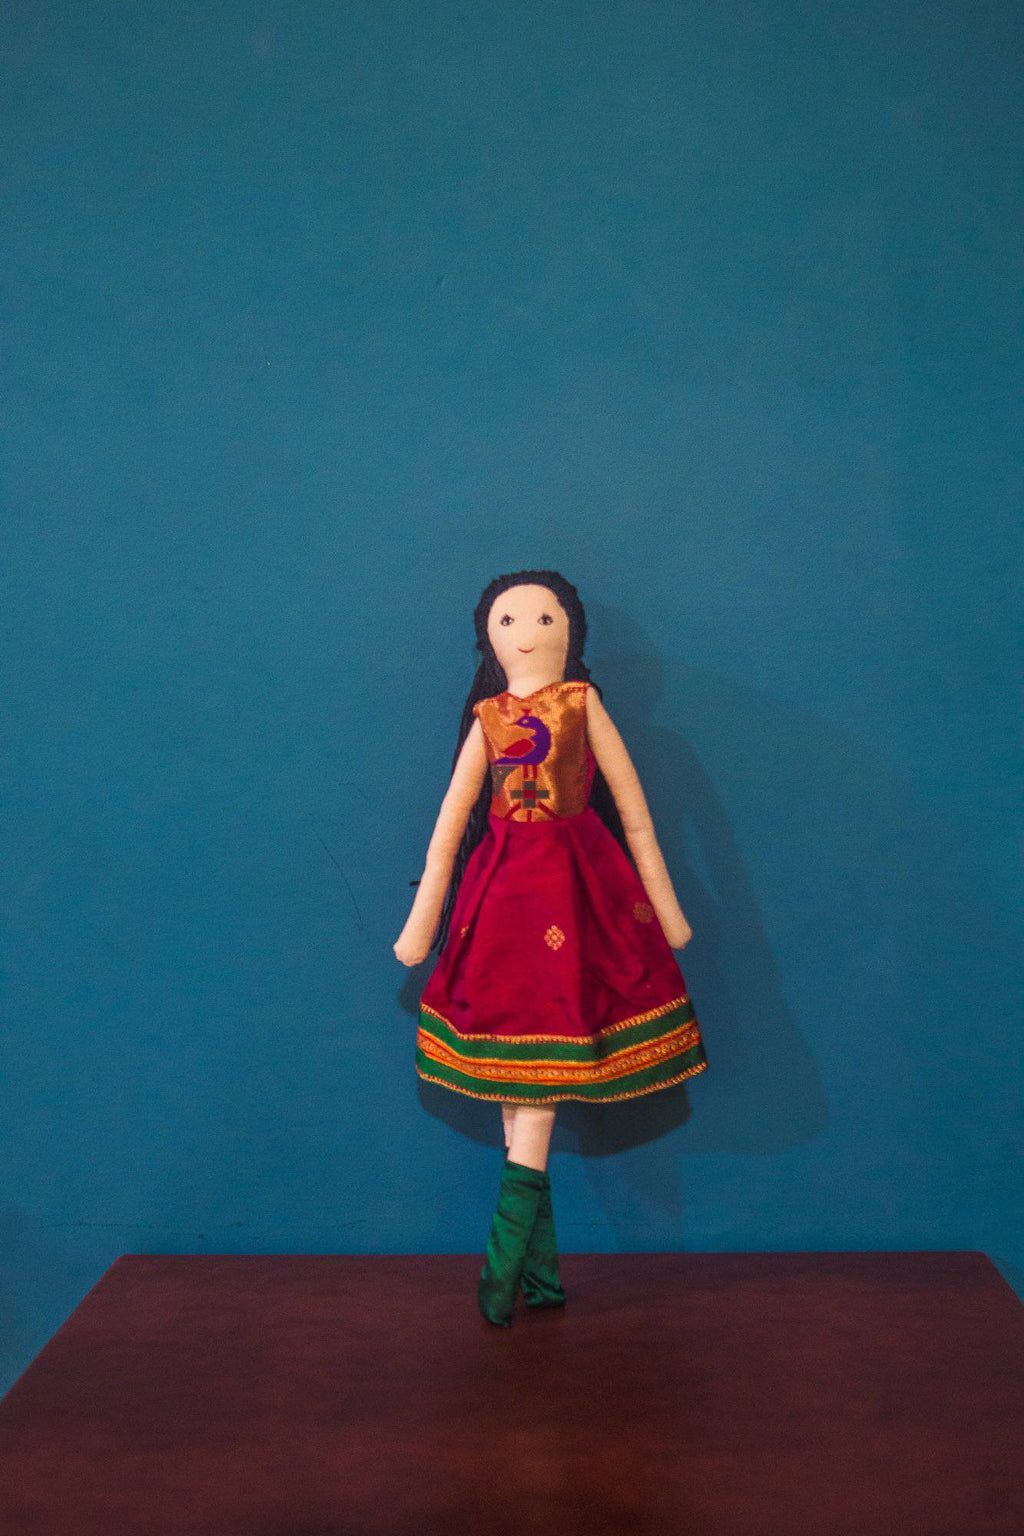 Kids fabric doll with rich red Paithani frock - WEAR COURAGE